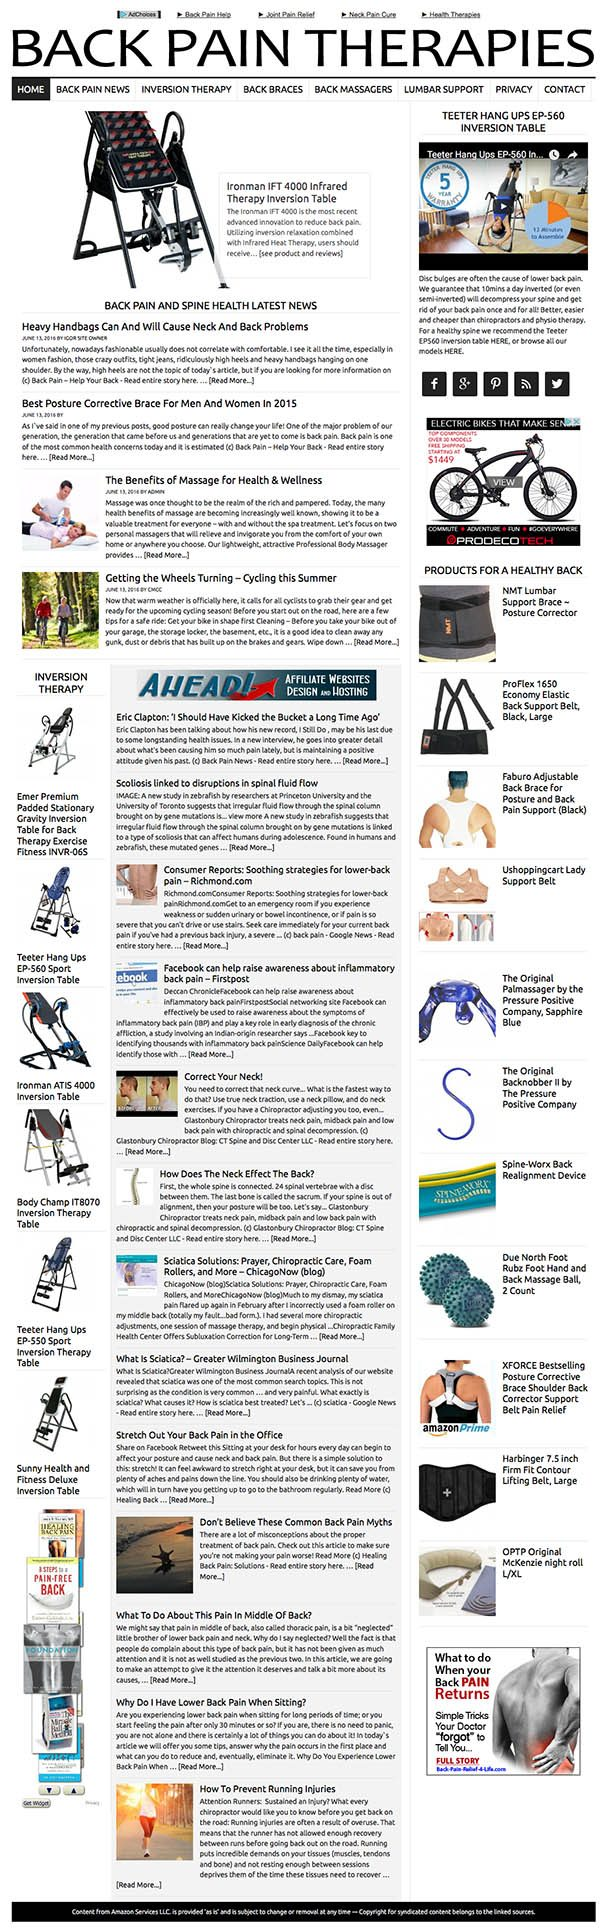 1Backpain_therapies_News,_articles_and_products_to_help_get_rid_of_back_pain copy